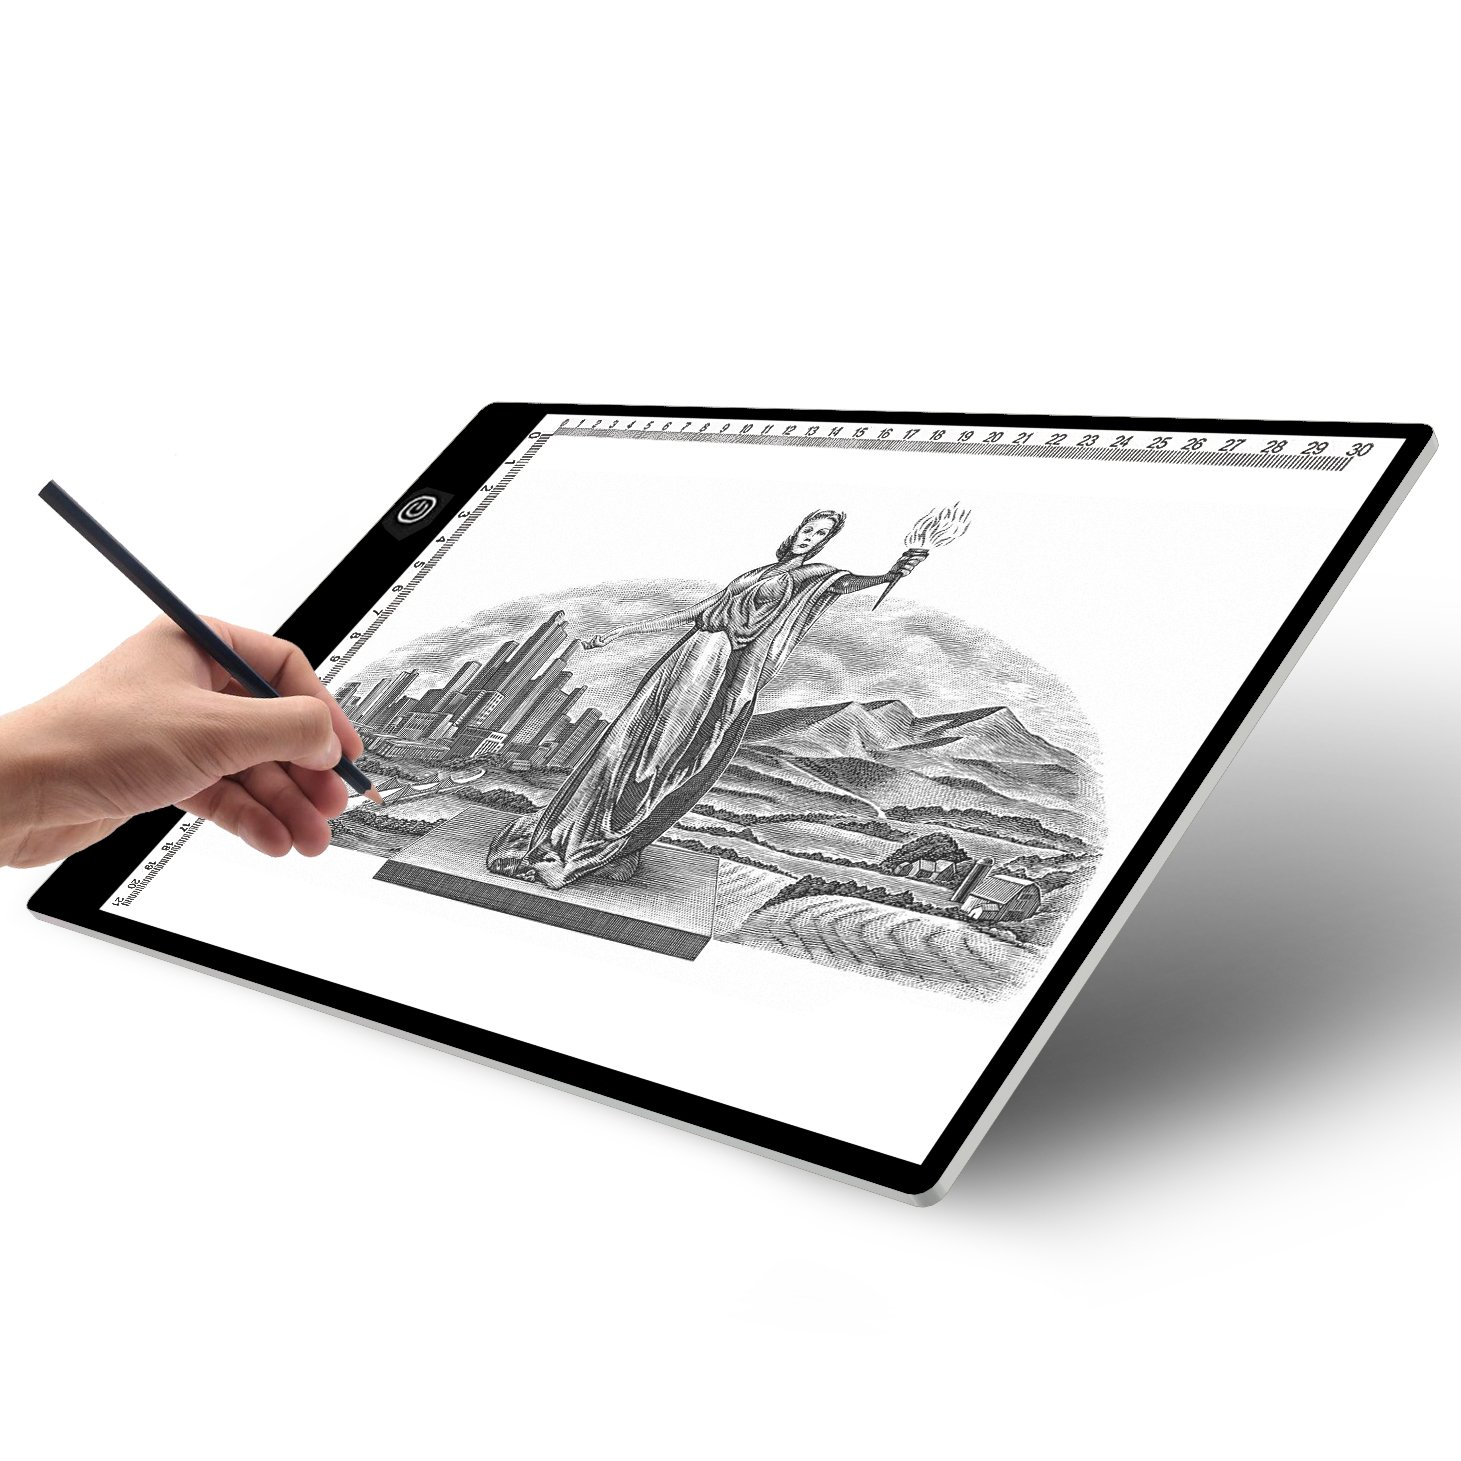 〖Deluxe Version〗A4 Light Box Tracer with Scale |Ultra-Thin USB Powered Portable Dimmable Brightness LED Artcraft Tracing Light Pad | Light Box for Artists Drawing Sketching Animation Designing